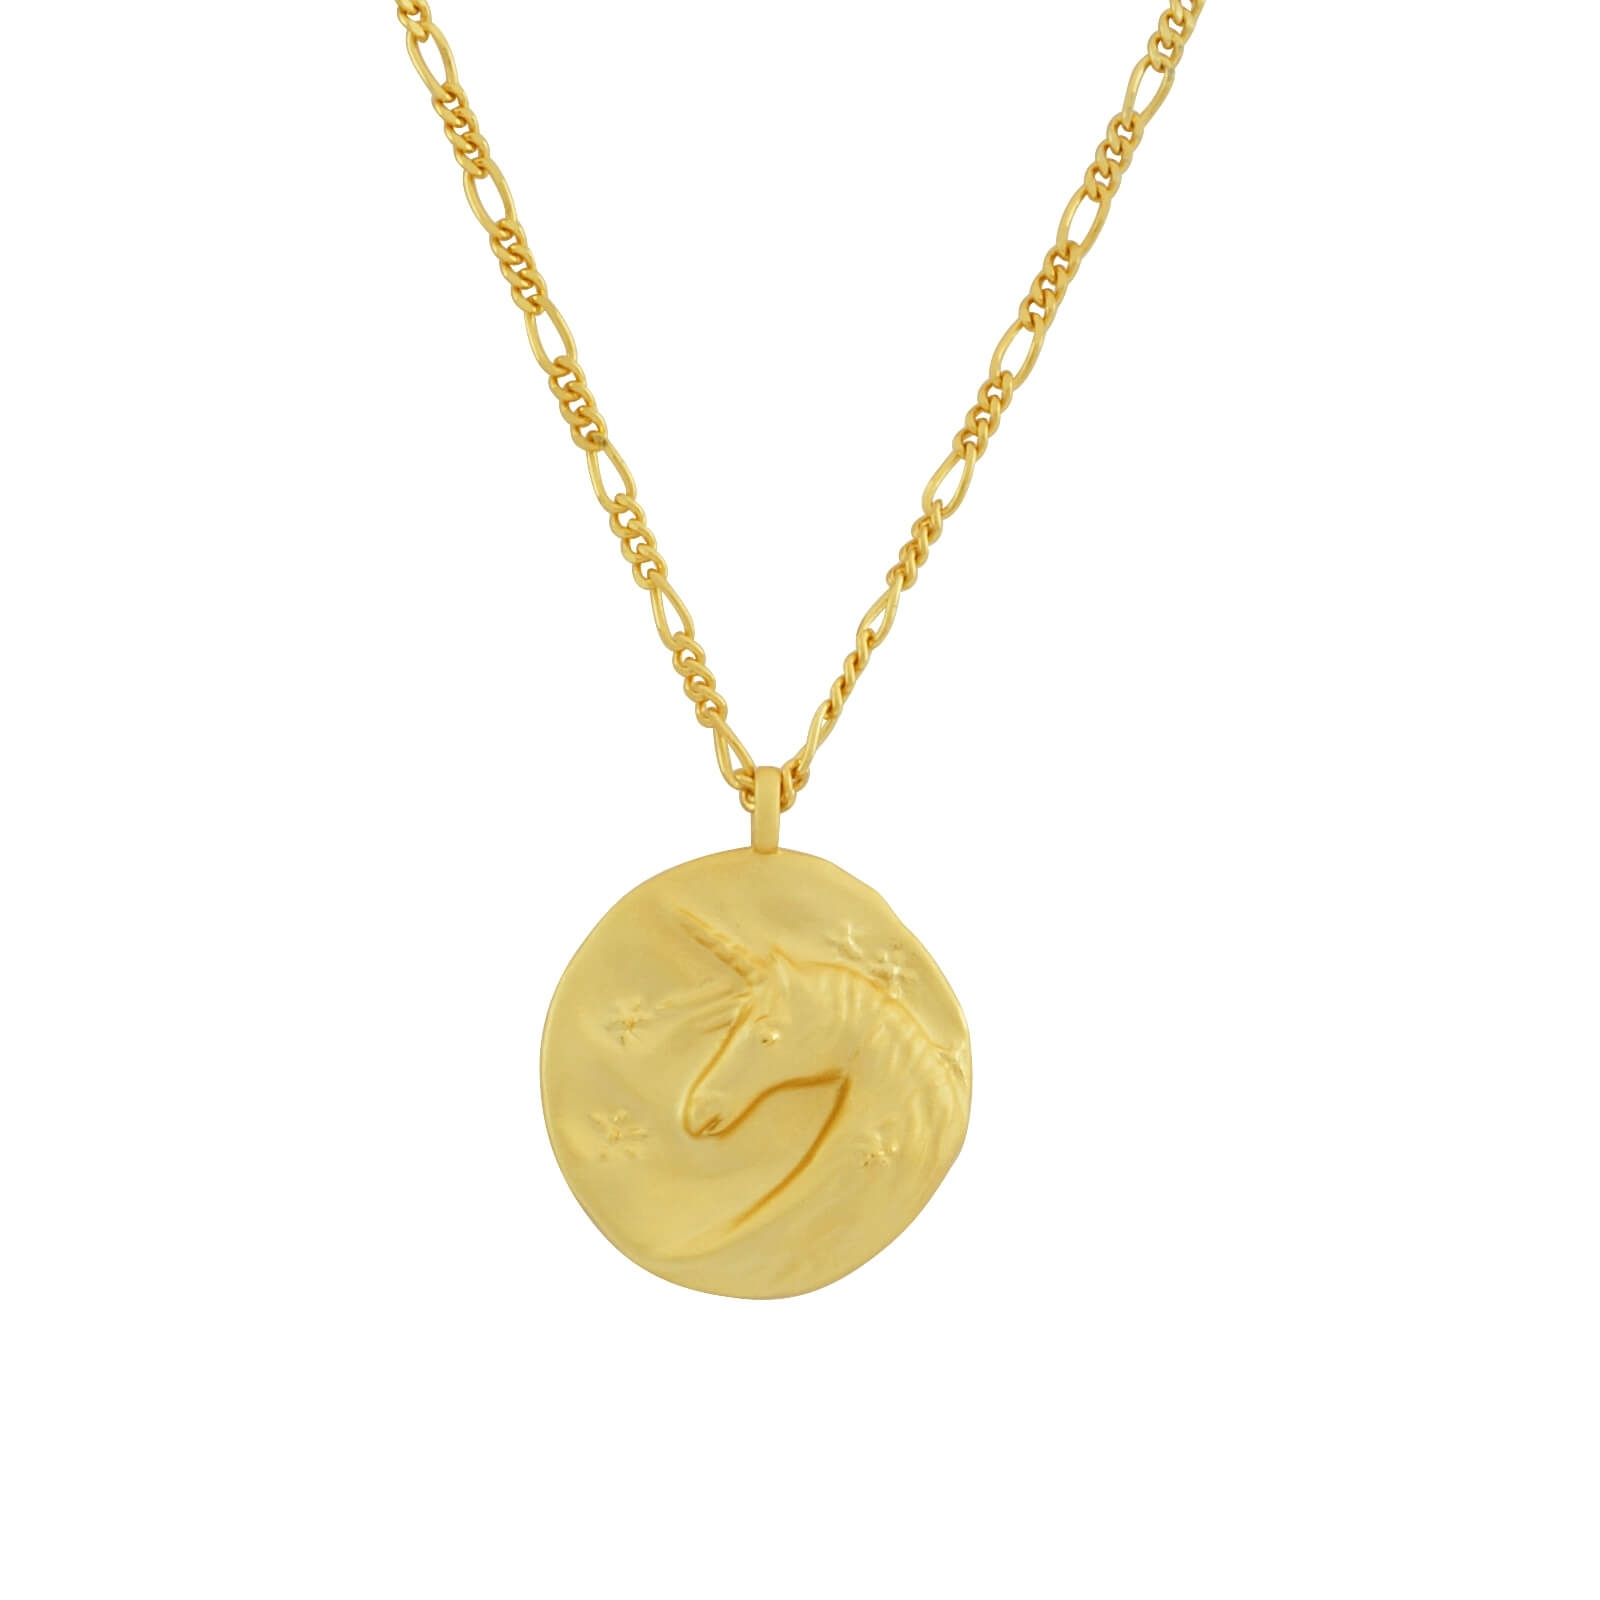 image rachel balfour pendant main the necklace unicorn product